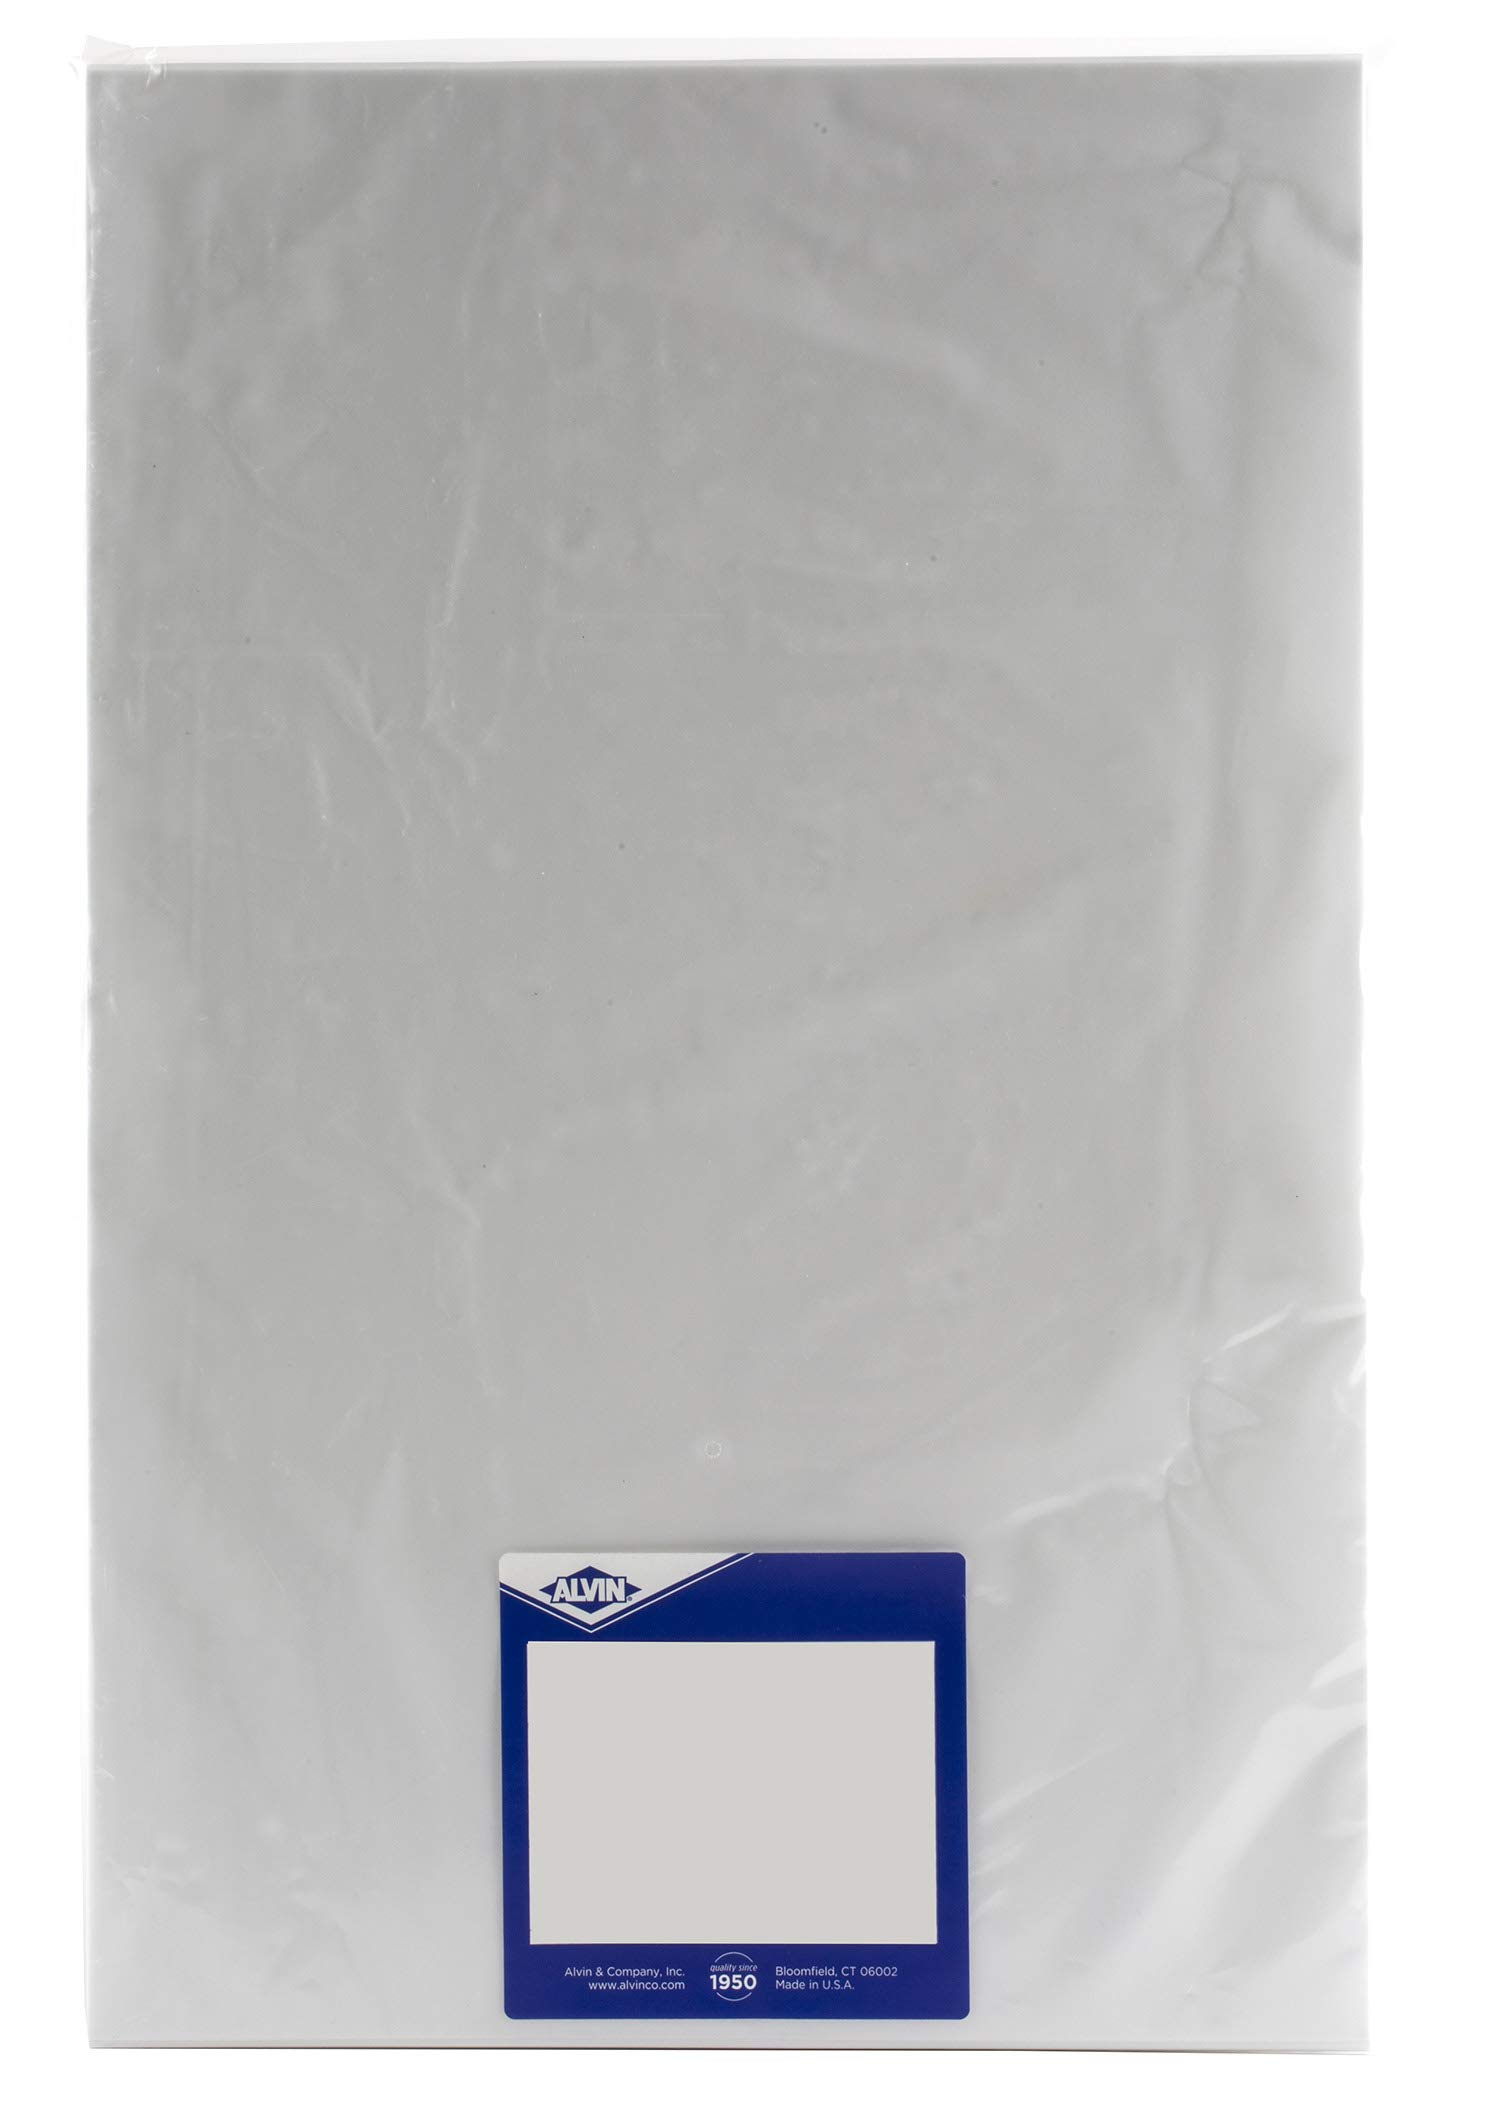 Alvin 6855/S-XO-8 Alva-Line 100 percent Rag Vellum Tracing Paper 10-Sheet Pack 18 inches x 24 inches by Alvin